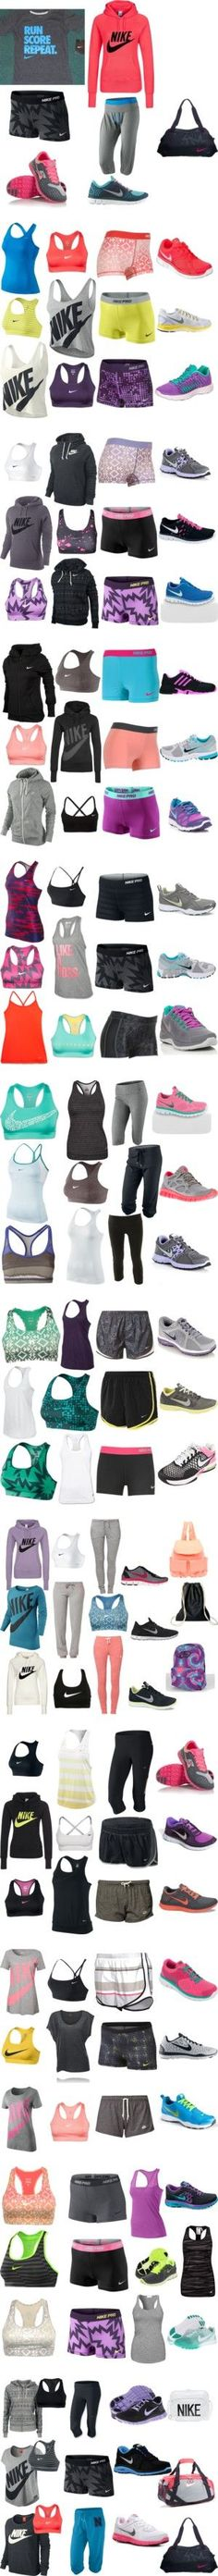 Cute Nike workout gear | Workout clothes | Gym Clothes | Running clothes @ http://www.FitnessApparelExpress.com